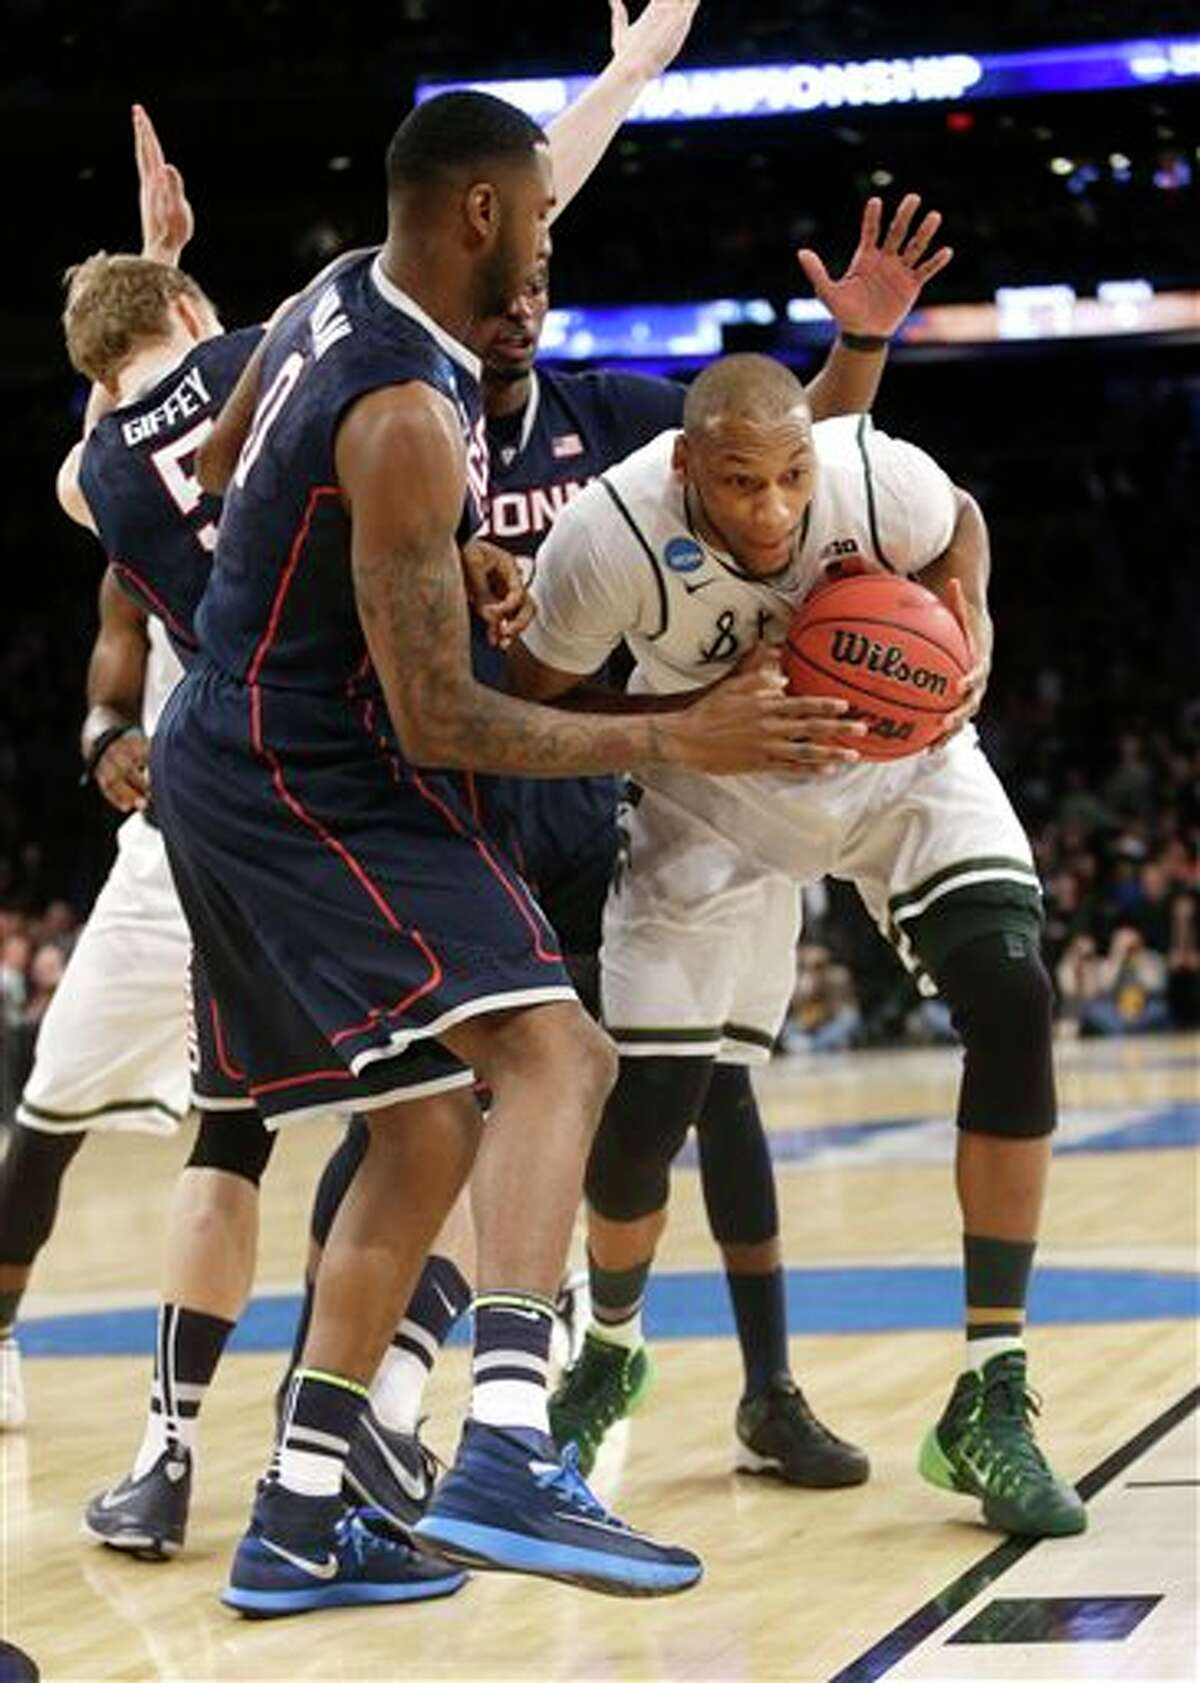 Michigan State's Adreian Payne, right, tries to move the ball past Connecticut's Phillip Nolan in the first half of a regional final at the NCAA college basketball tournament on Sunday, March 30, 2014, in New York. (AP Photo/Frank Franklin II)